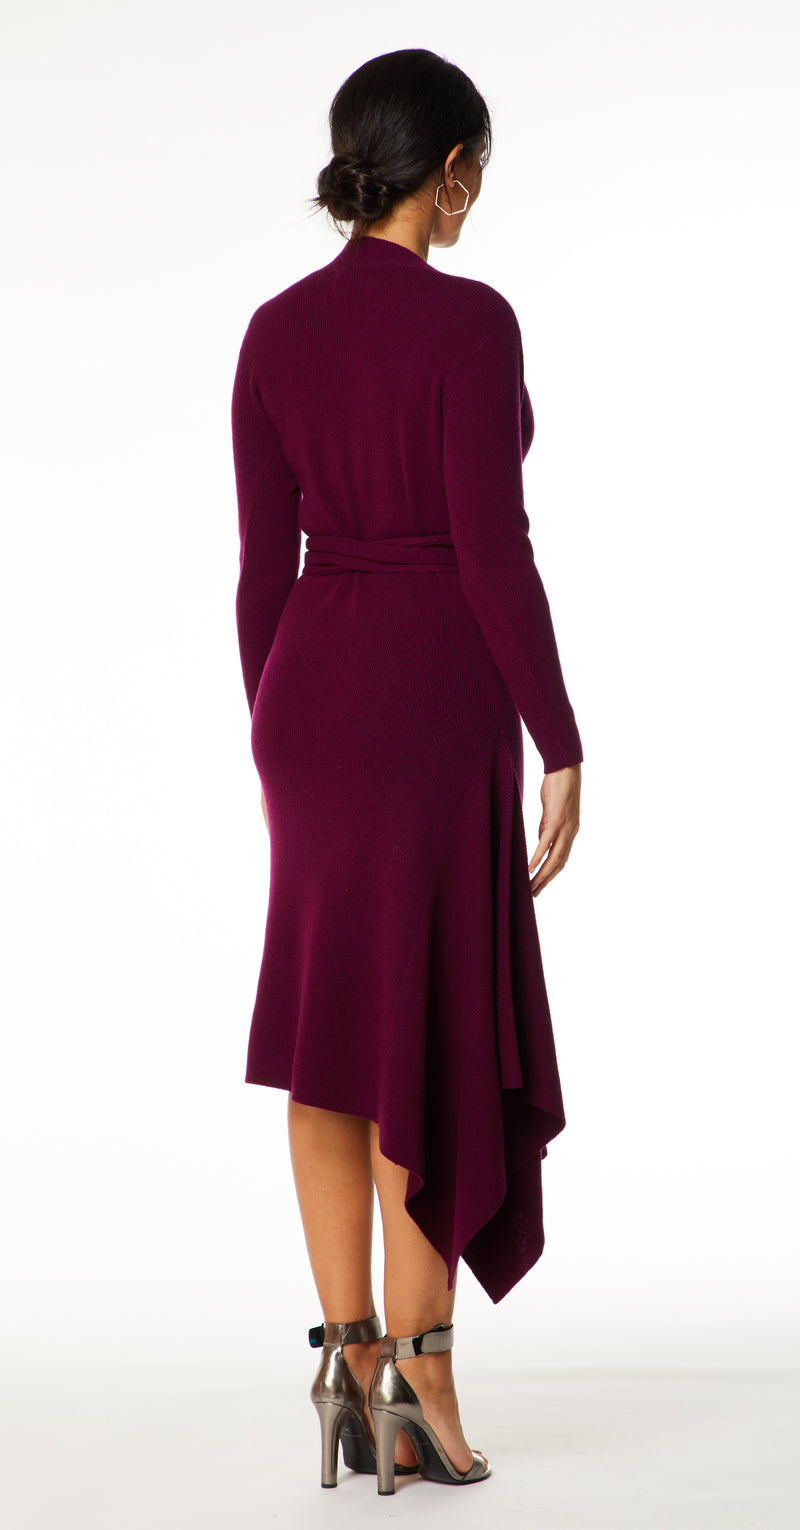 Eline Cashmere Blend Knitted Dress DRK289 Plum